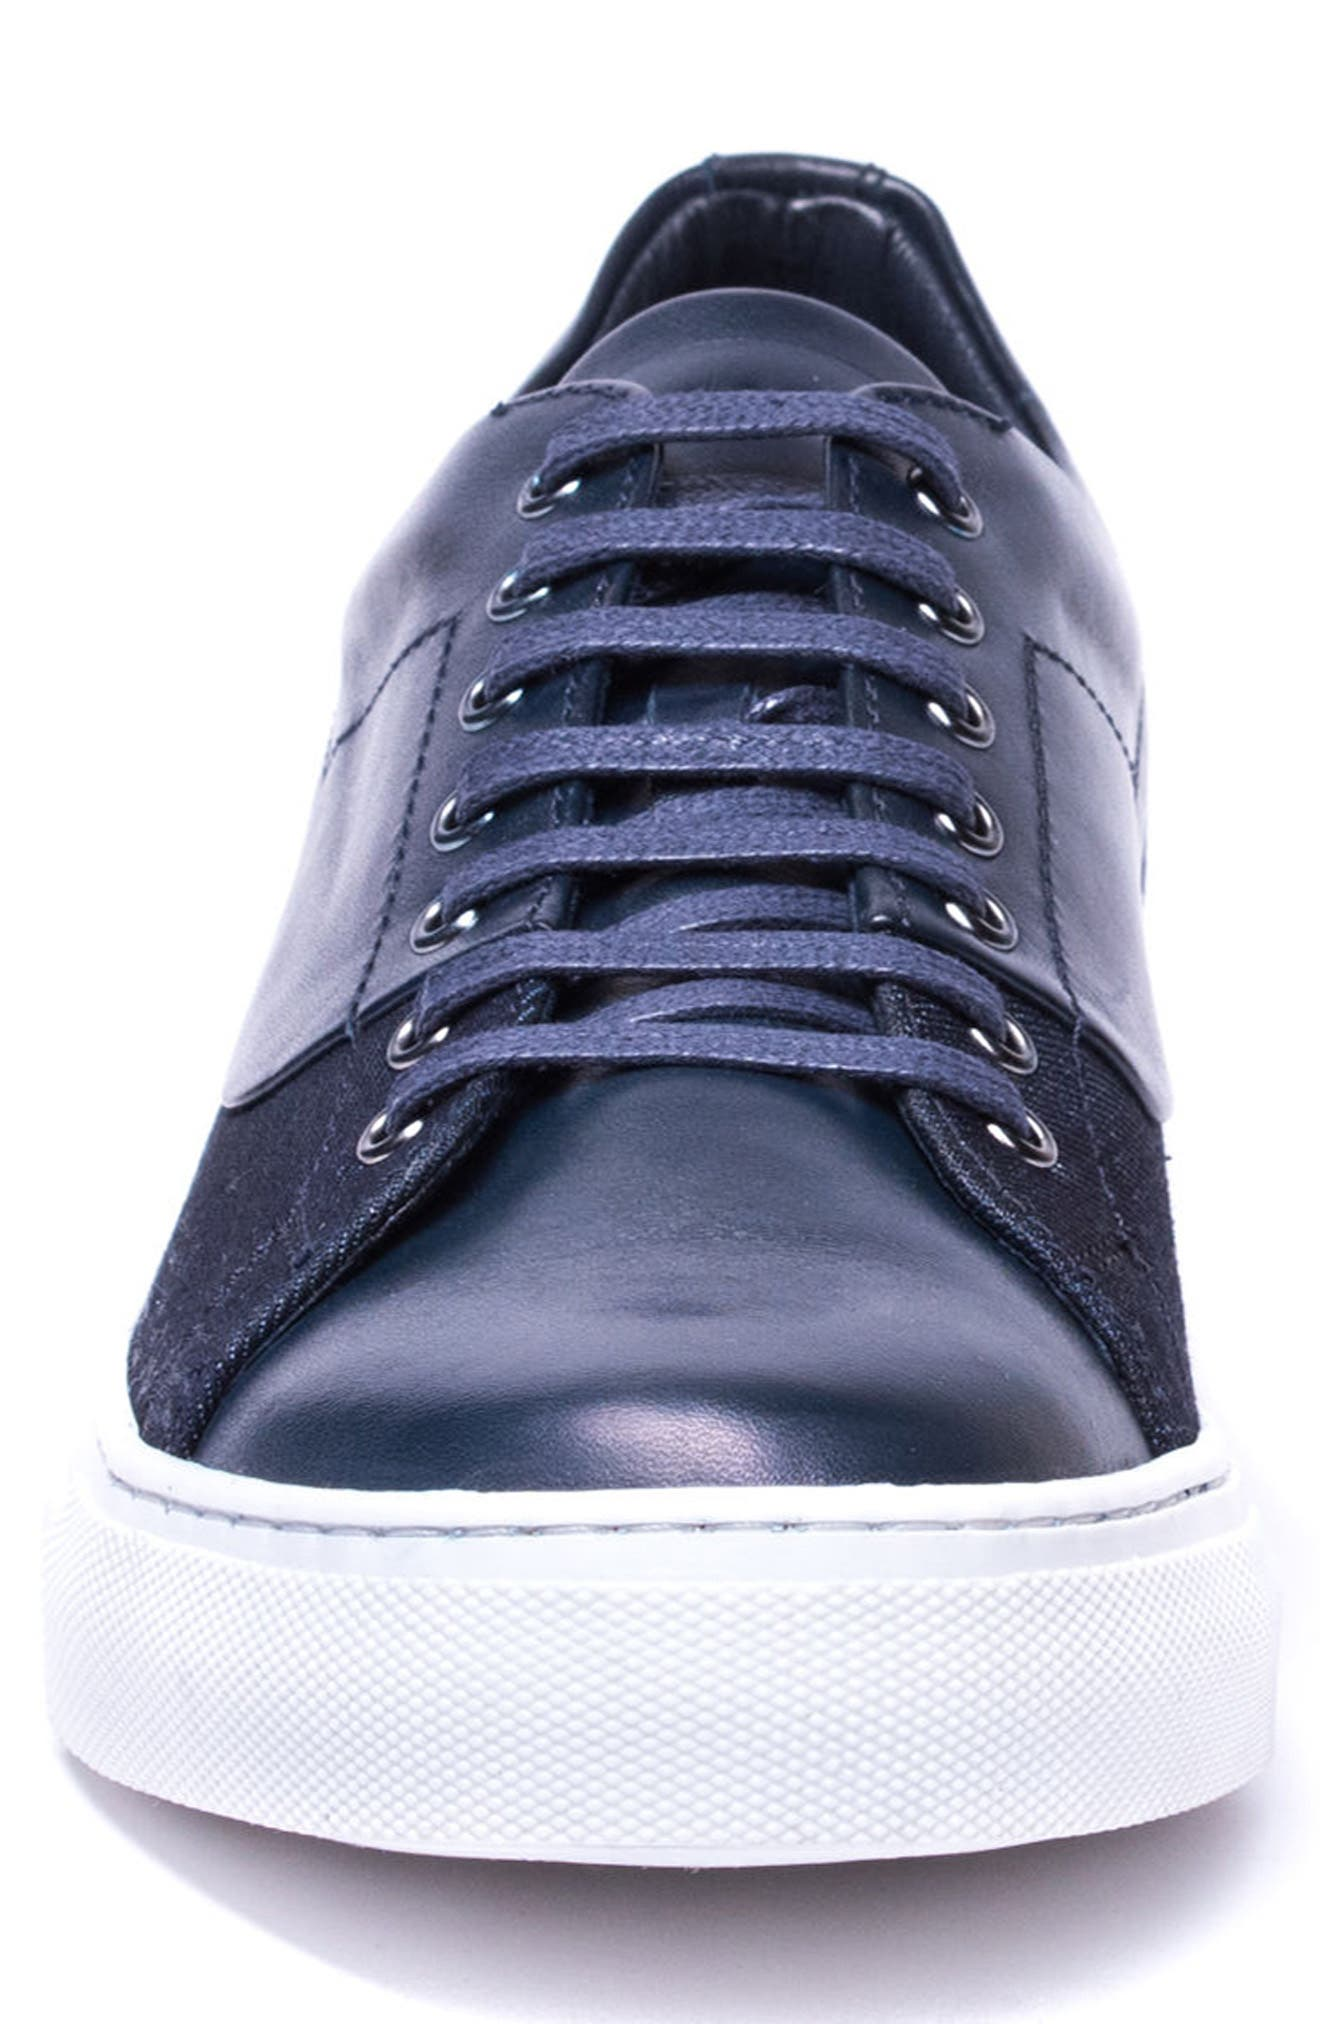 Luke Low Top Sneaker,                             Alternate thumbnail 4, color,                             NAVY LEATHER